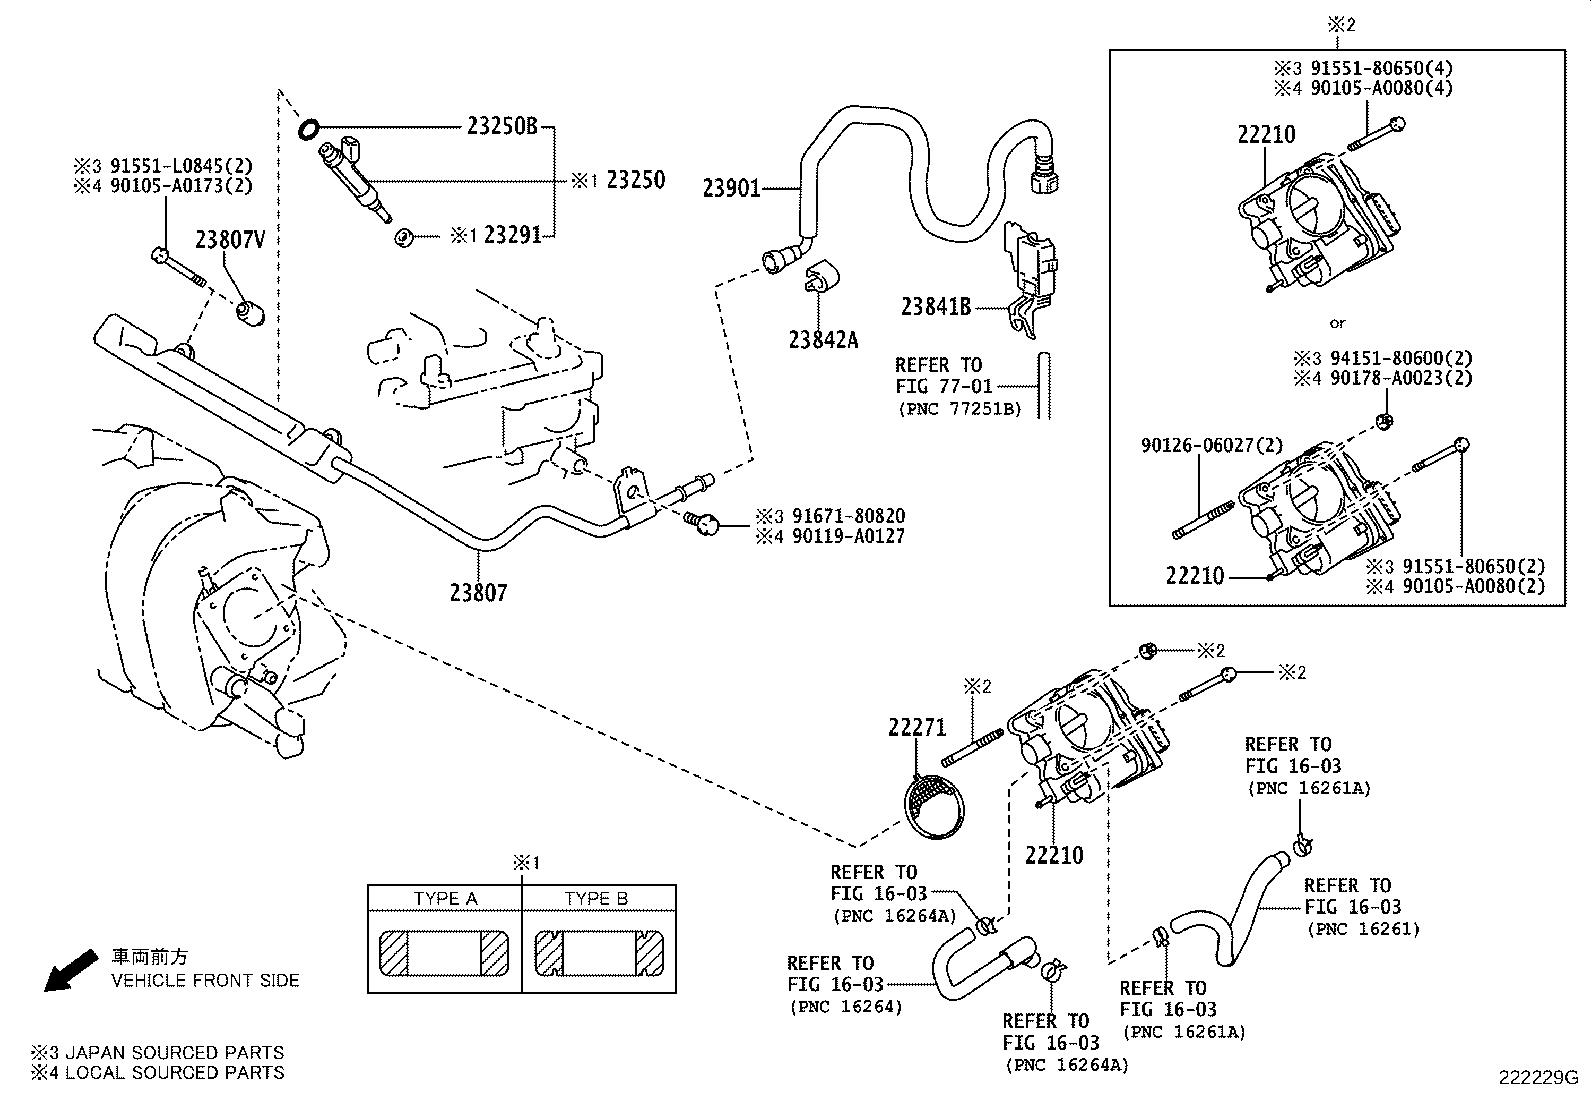 2013 Toyota Corolla Injector Assembly  Fuel  Interchangeable With 2320909140